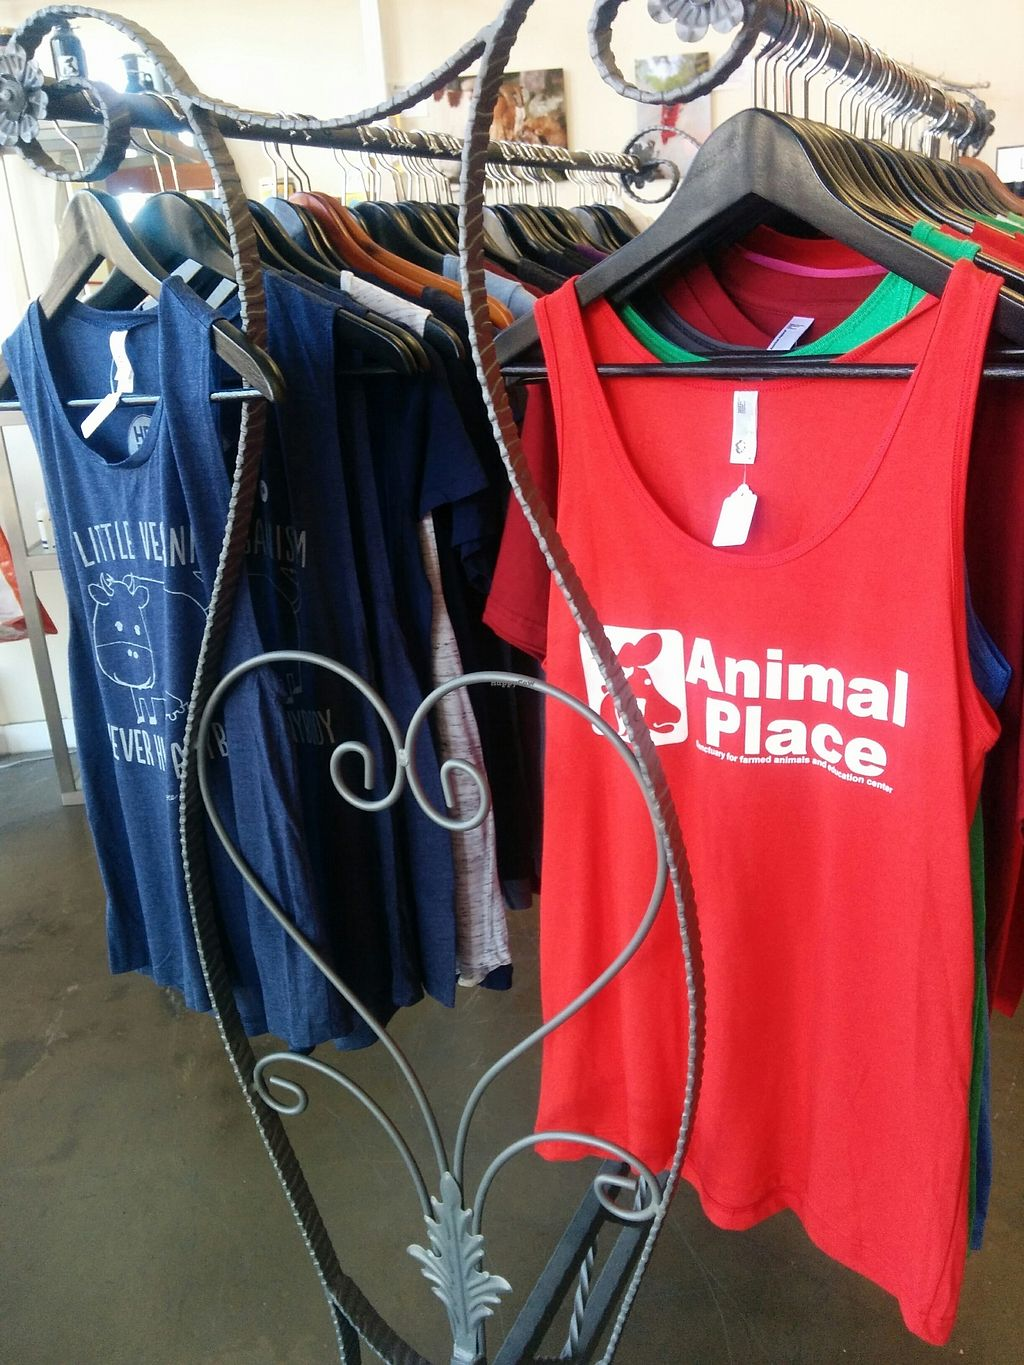 """Photo of Animal Place's Vegan Republic  by <a href=""""/members/profile/MizzB"""">MizzB</a> <br/>T shirts with a message <br/> July 30, 2017  - <a href='/contact/abuse/image/45427/286561'>Report</a>"""